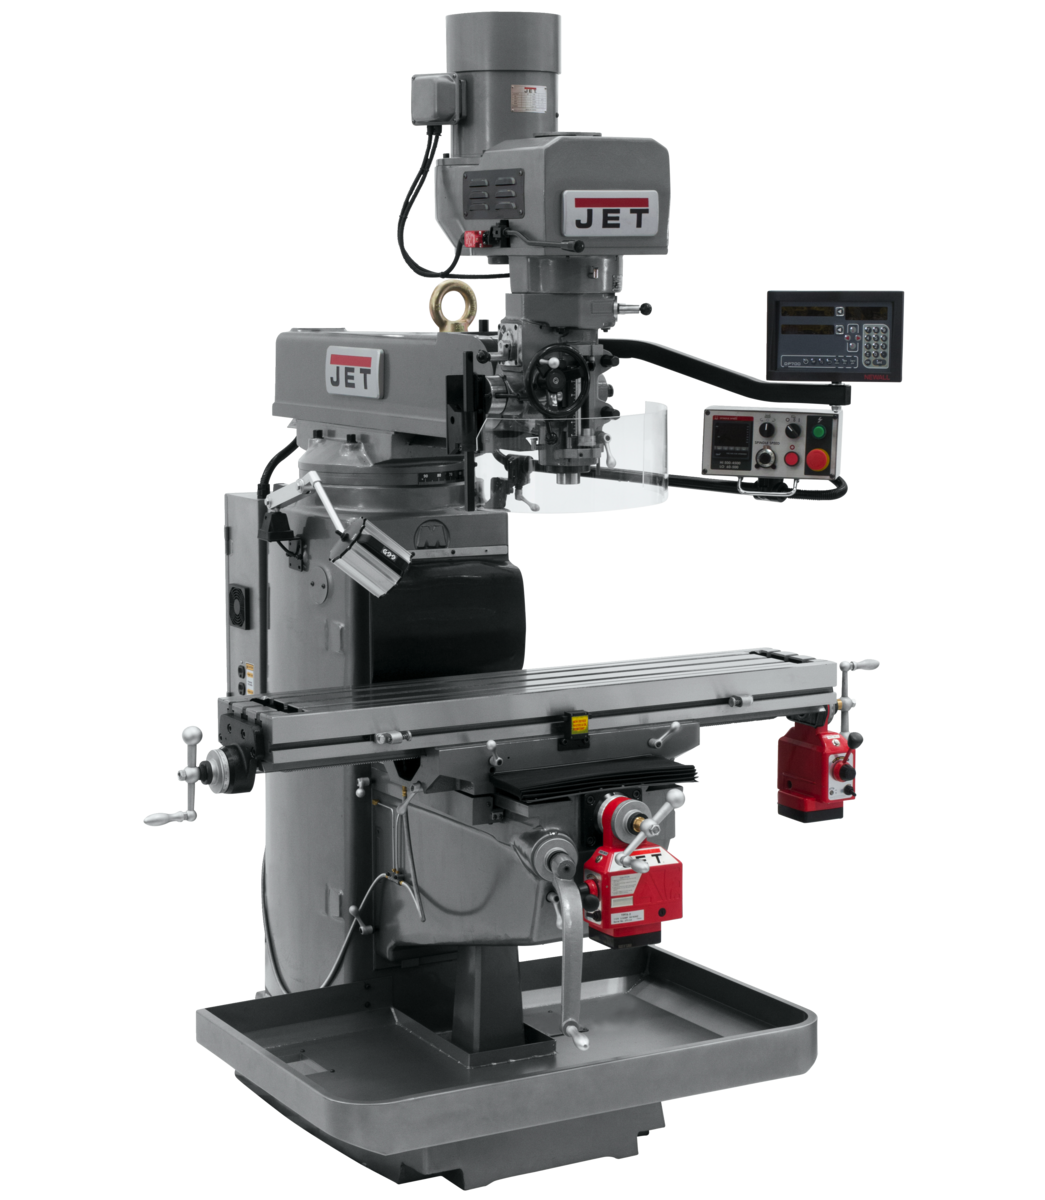 JTM-1050EVS/230 Mill With 3-Axis Newall DP700 DRO (Knee) With X and Z-Axis Powerfeeds